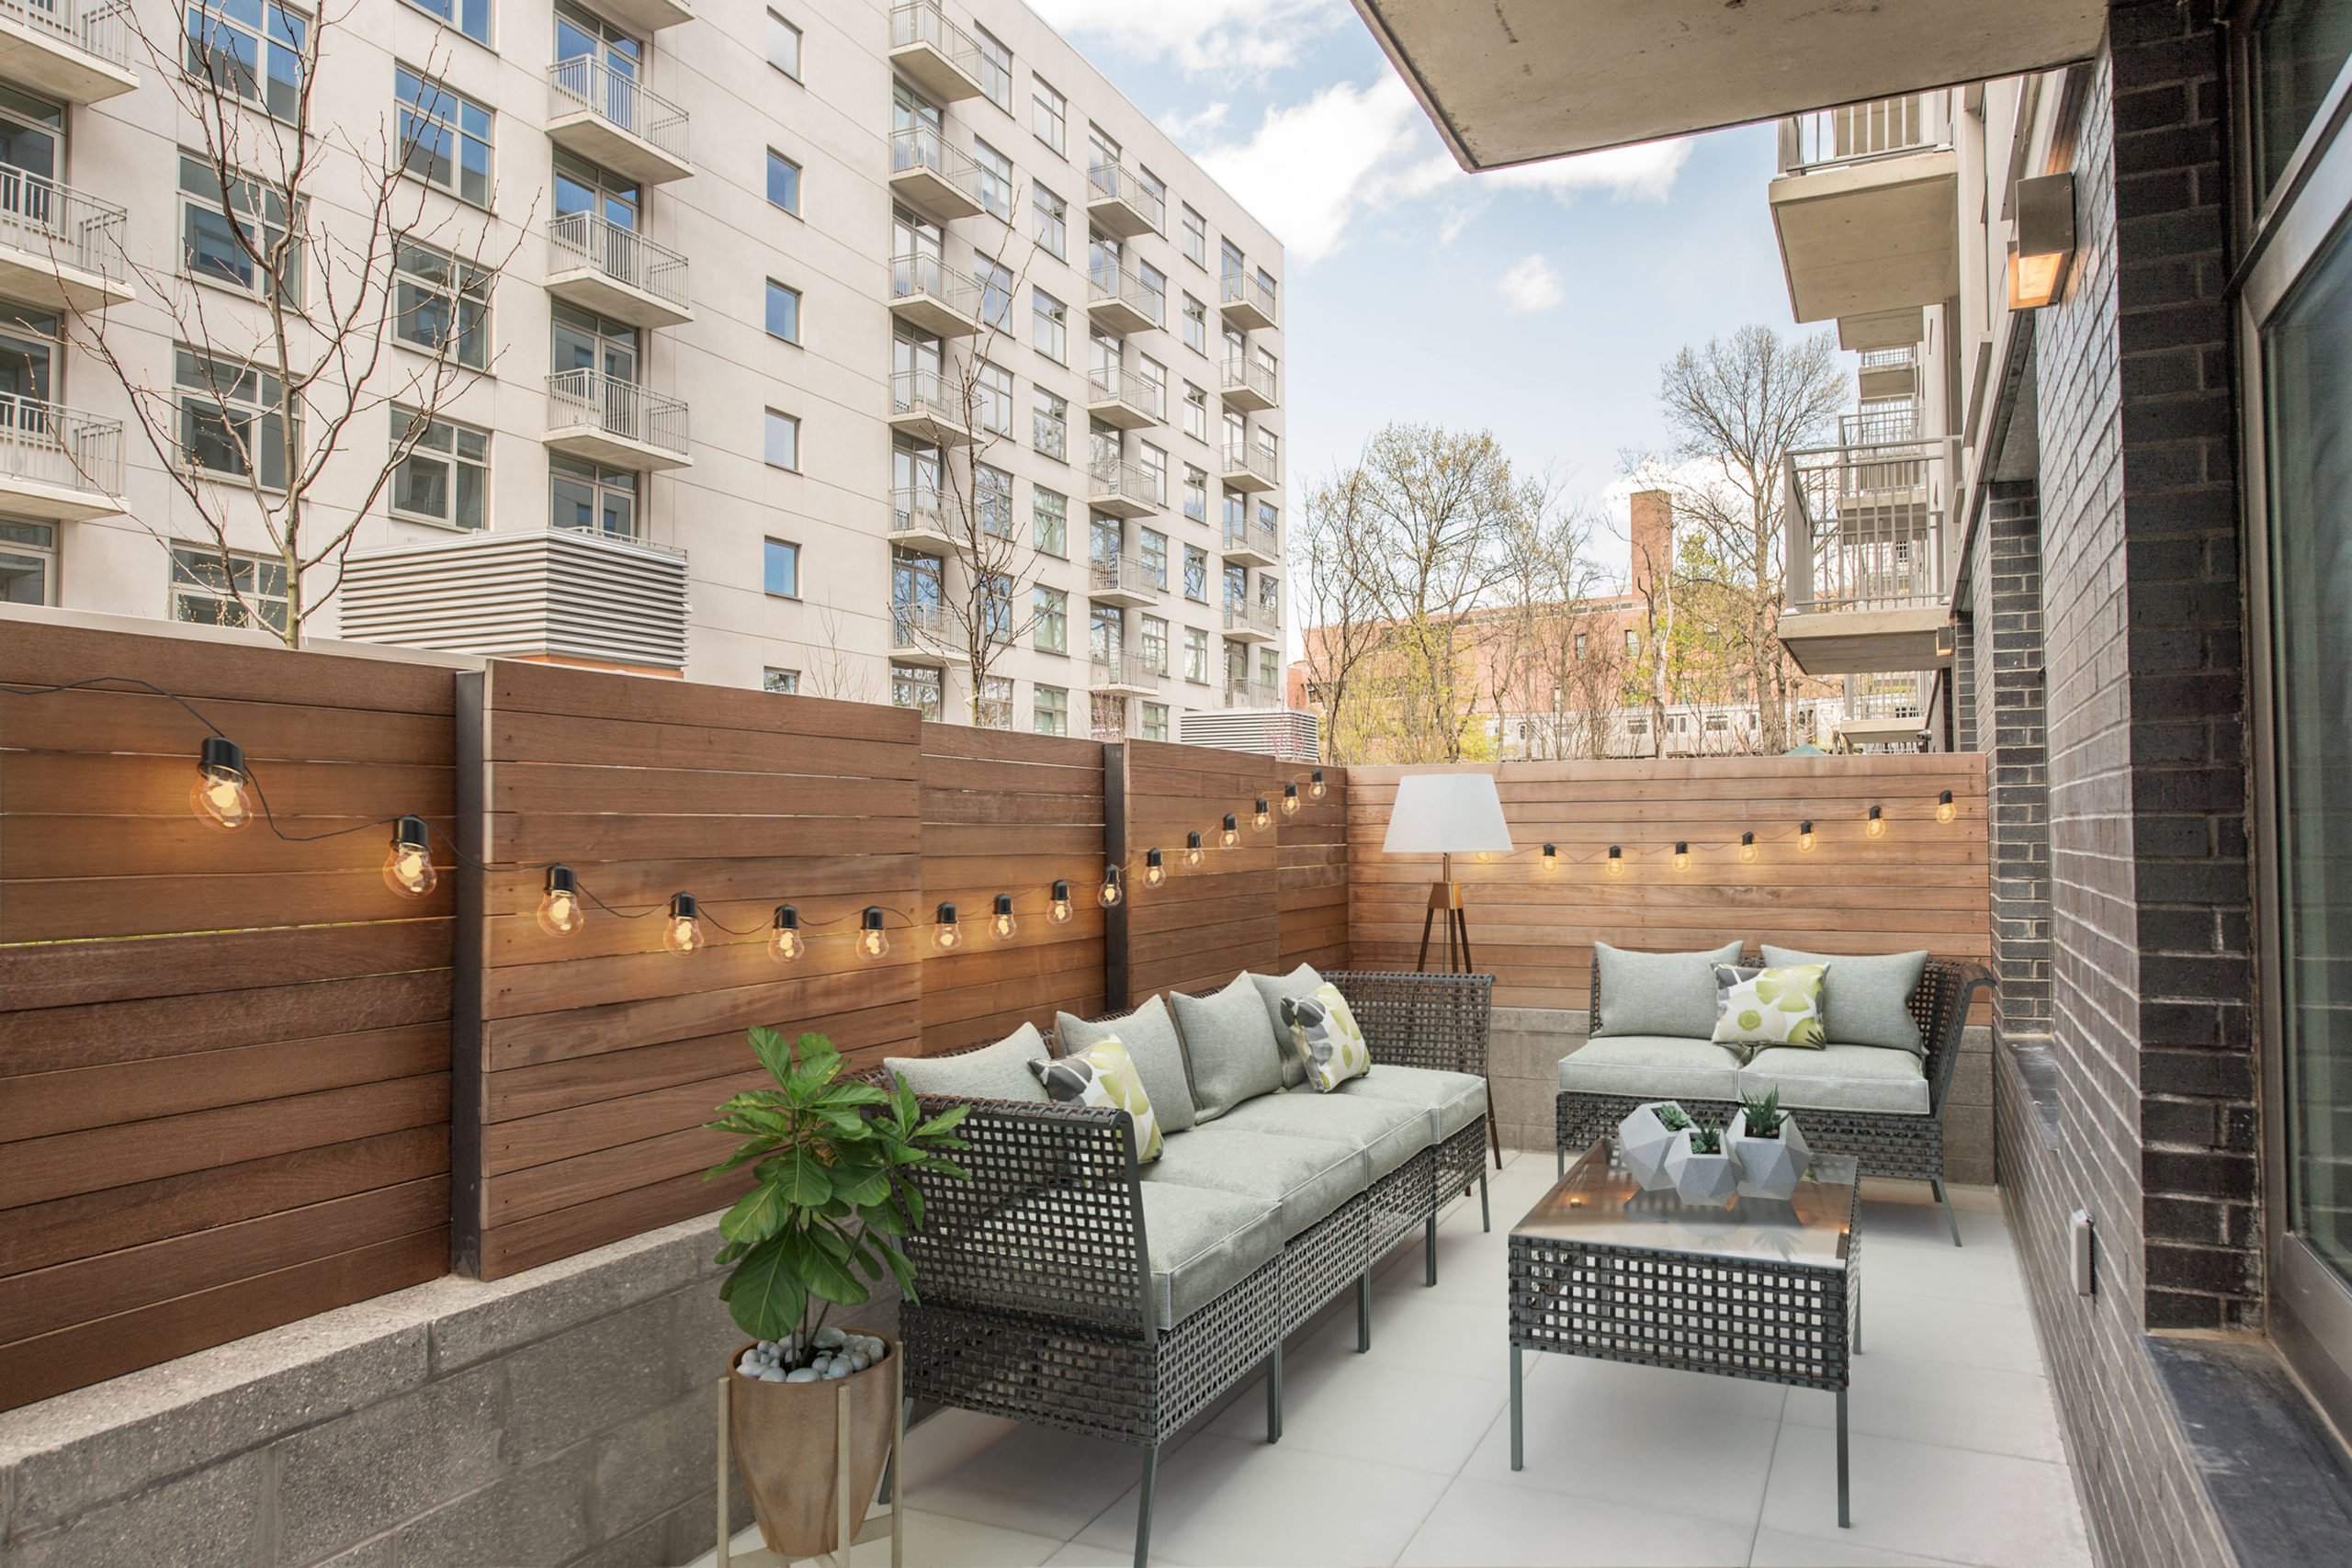 Private outdoor apartment patio at the Vitagraph Brooklyn, NY